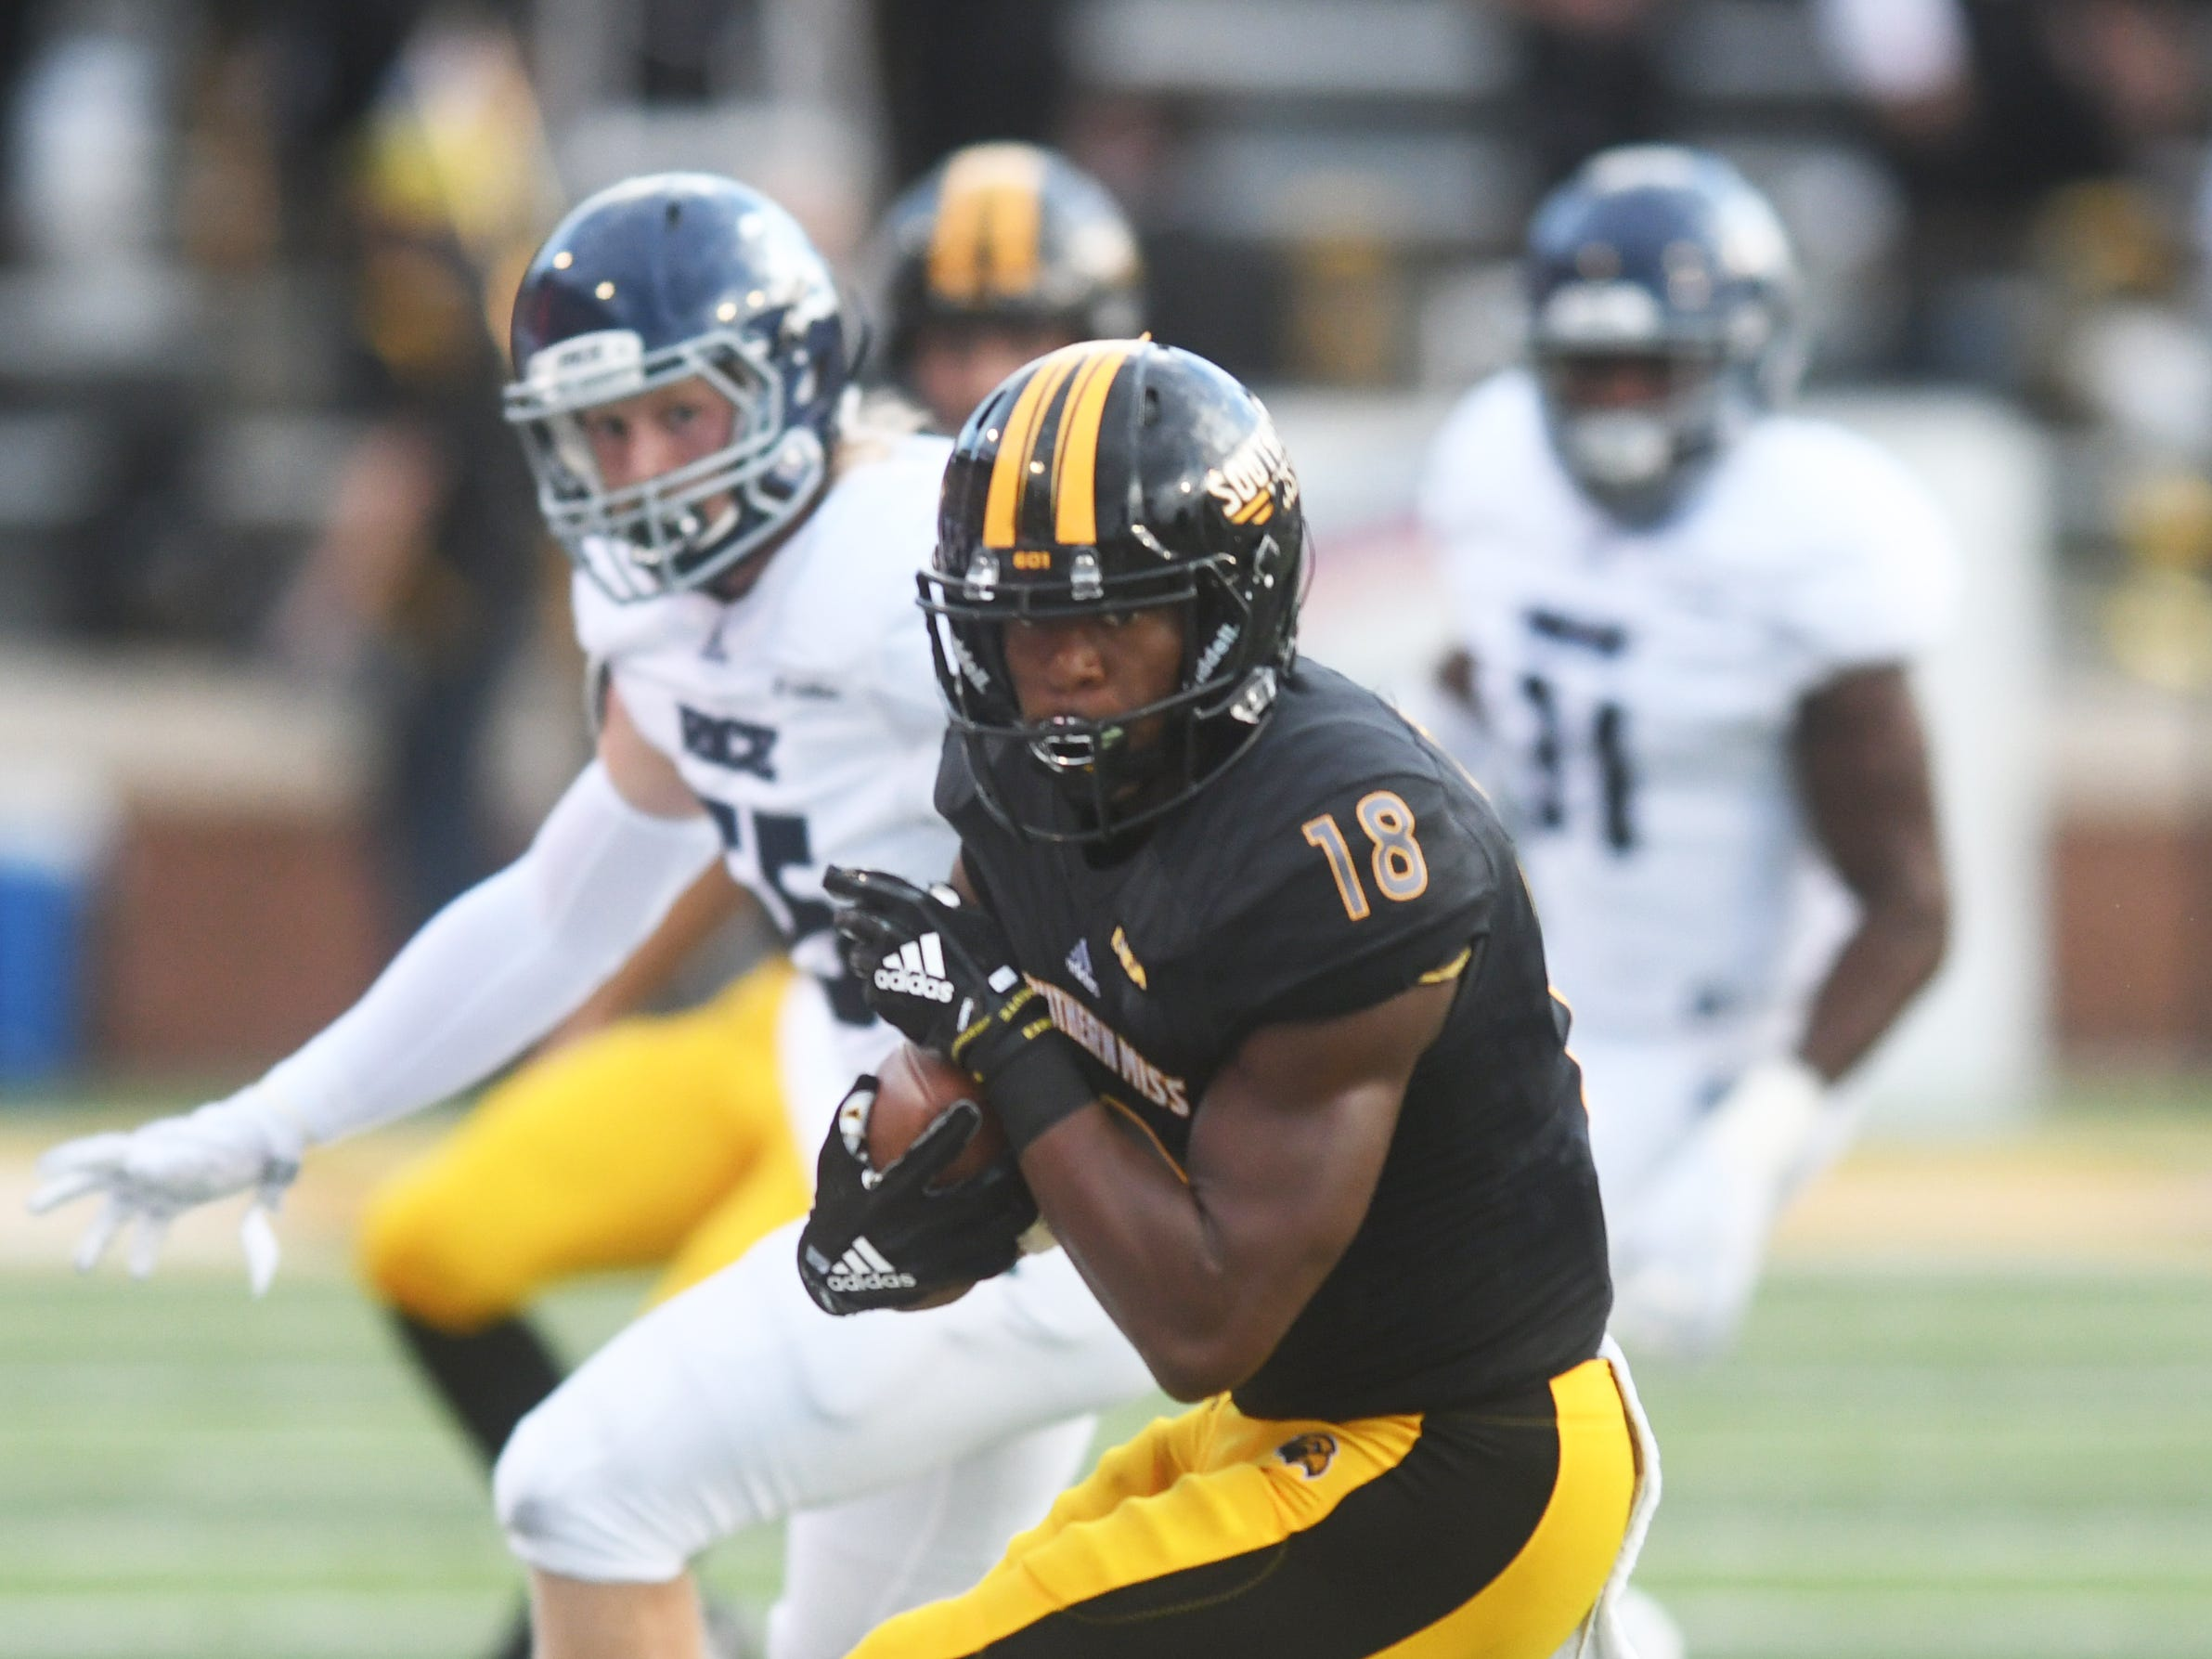 Southern Miss wide receiver De'Michael Harries catches the ball for a first down in a game against Rice at M.M. Roberts Stadium on Saturday, September 22, 2018.